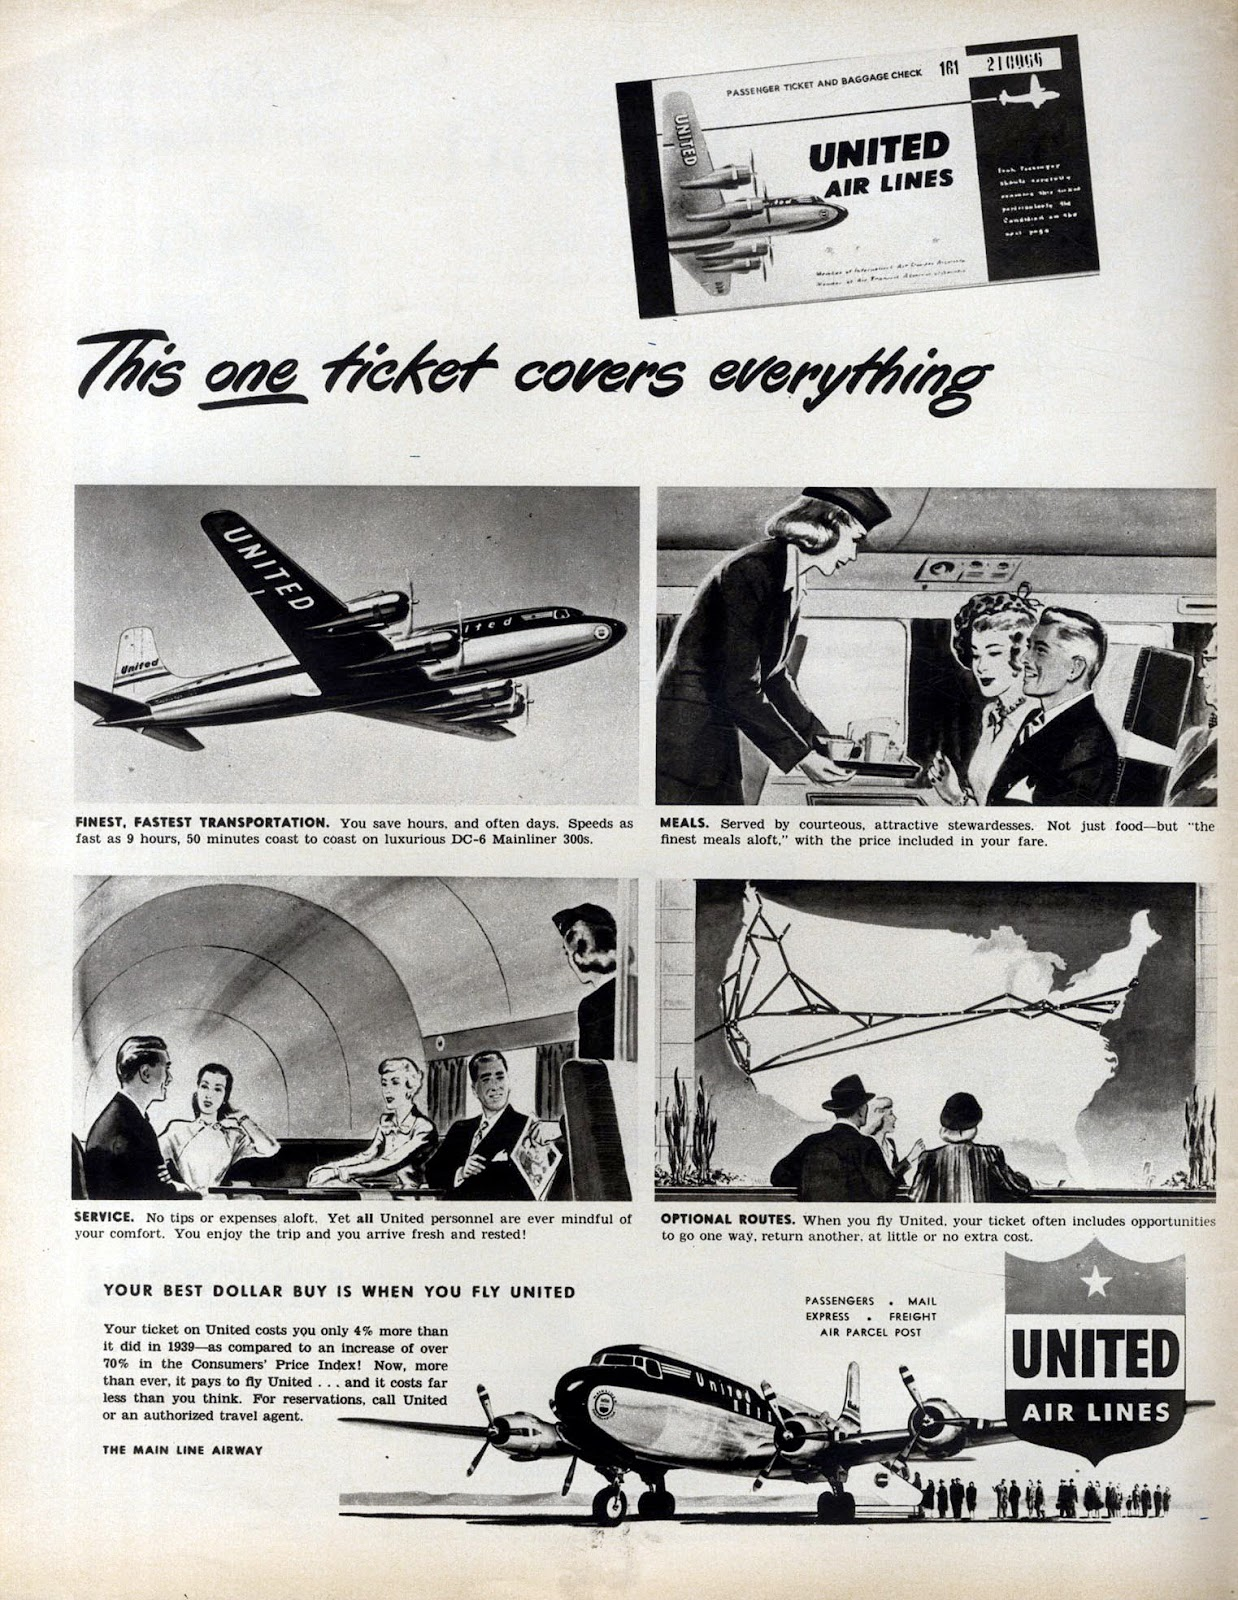 United Airlines Ad This One Ticket Flashbak